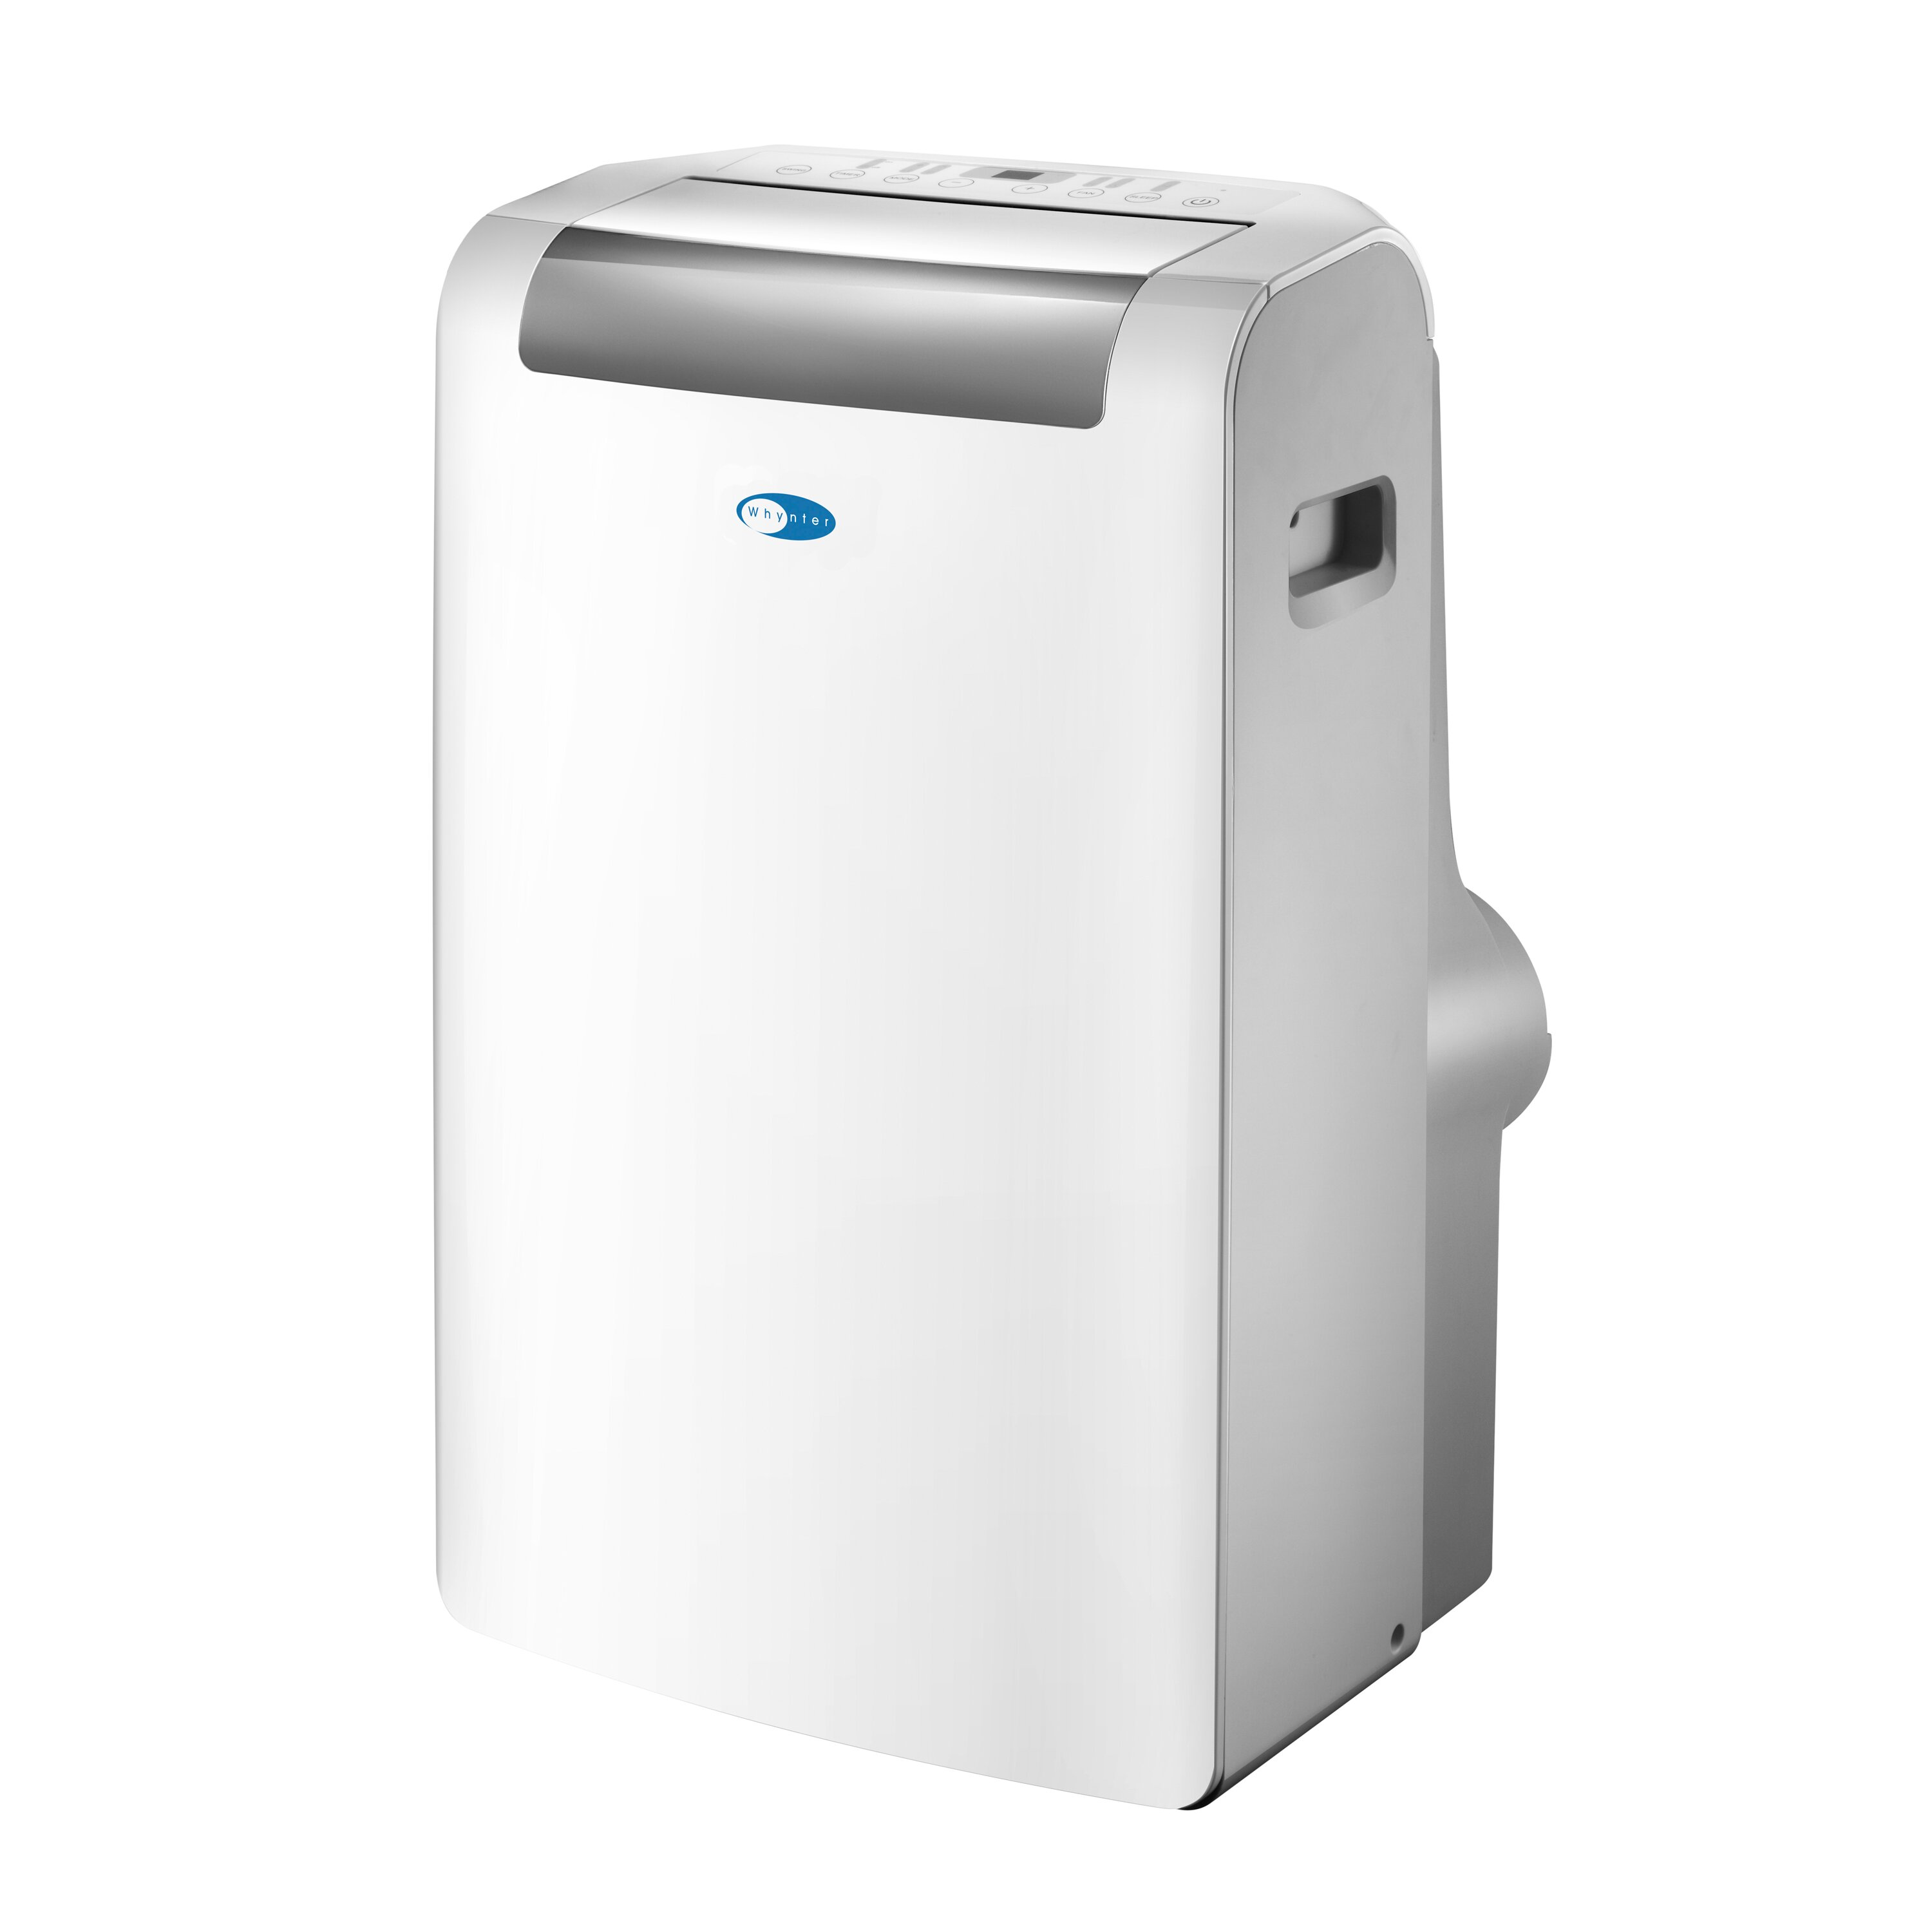 Whynter 14000 BTU Portable Air Conditioner and Heater & Reviews  #0069A8